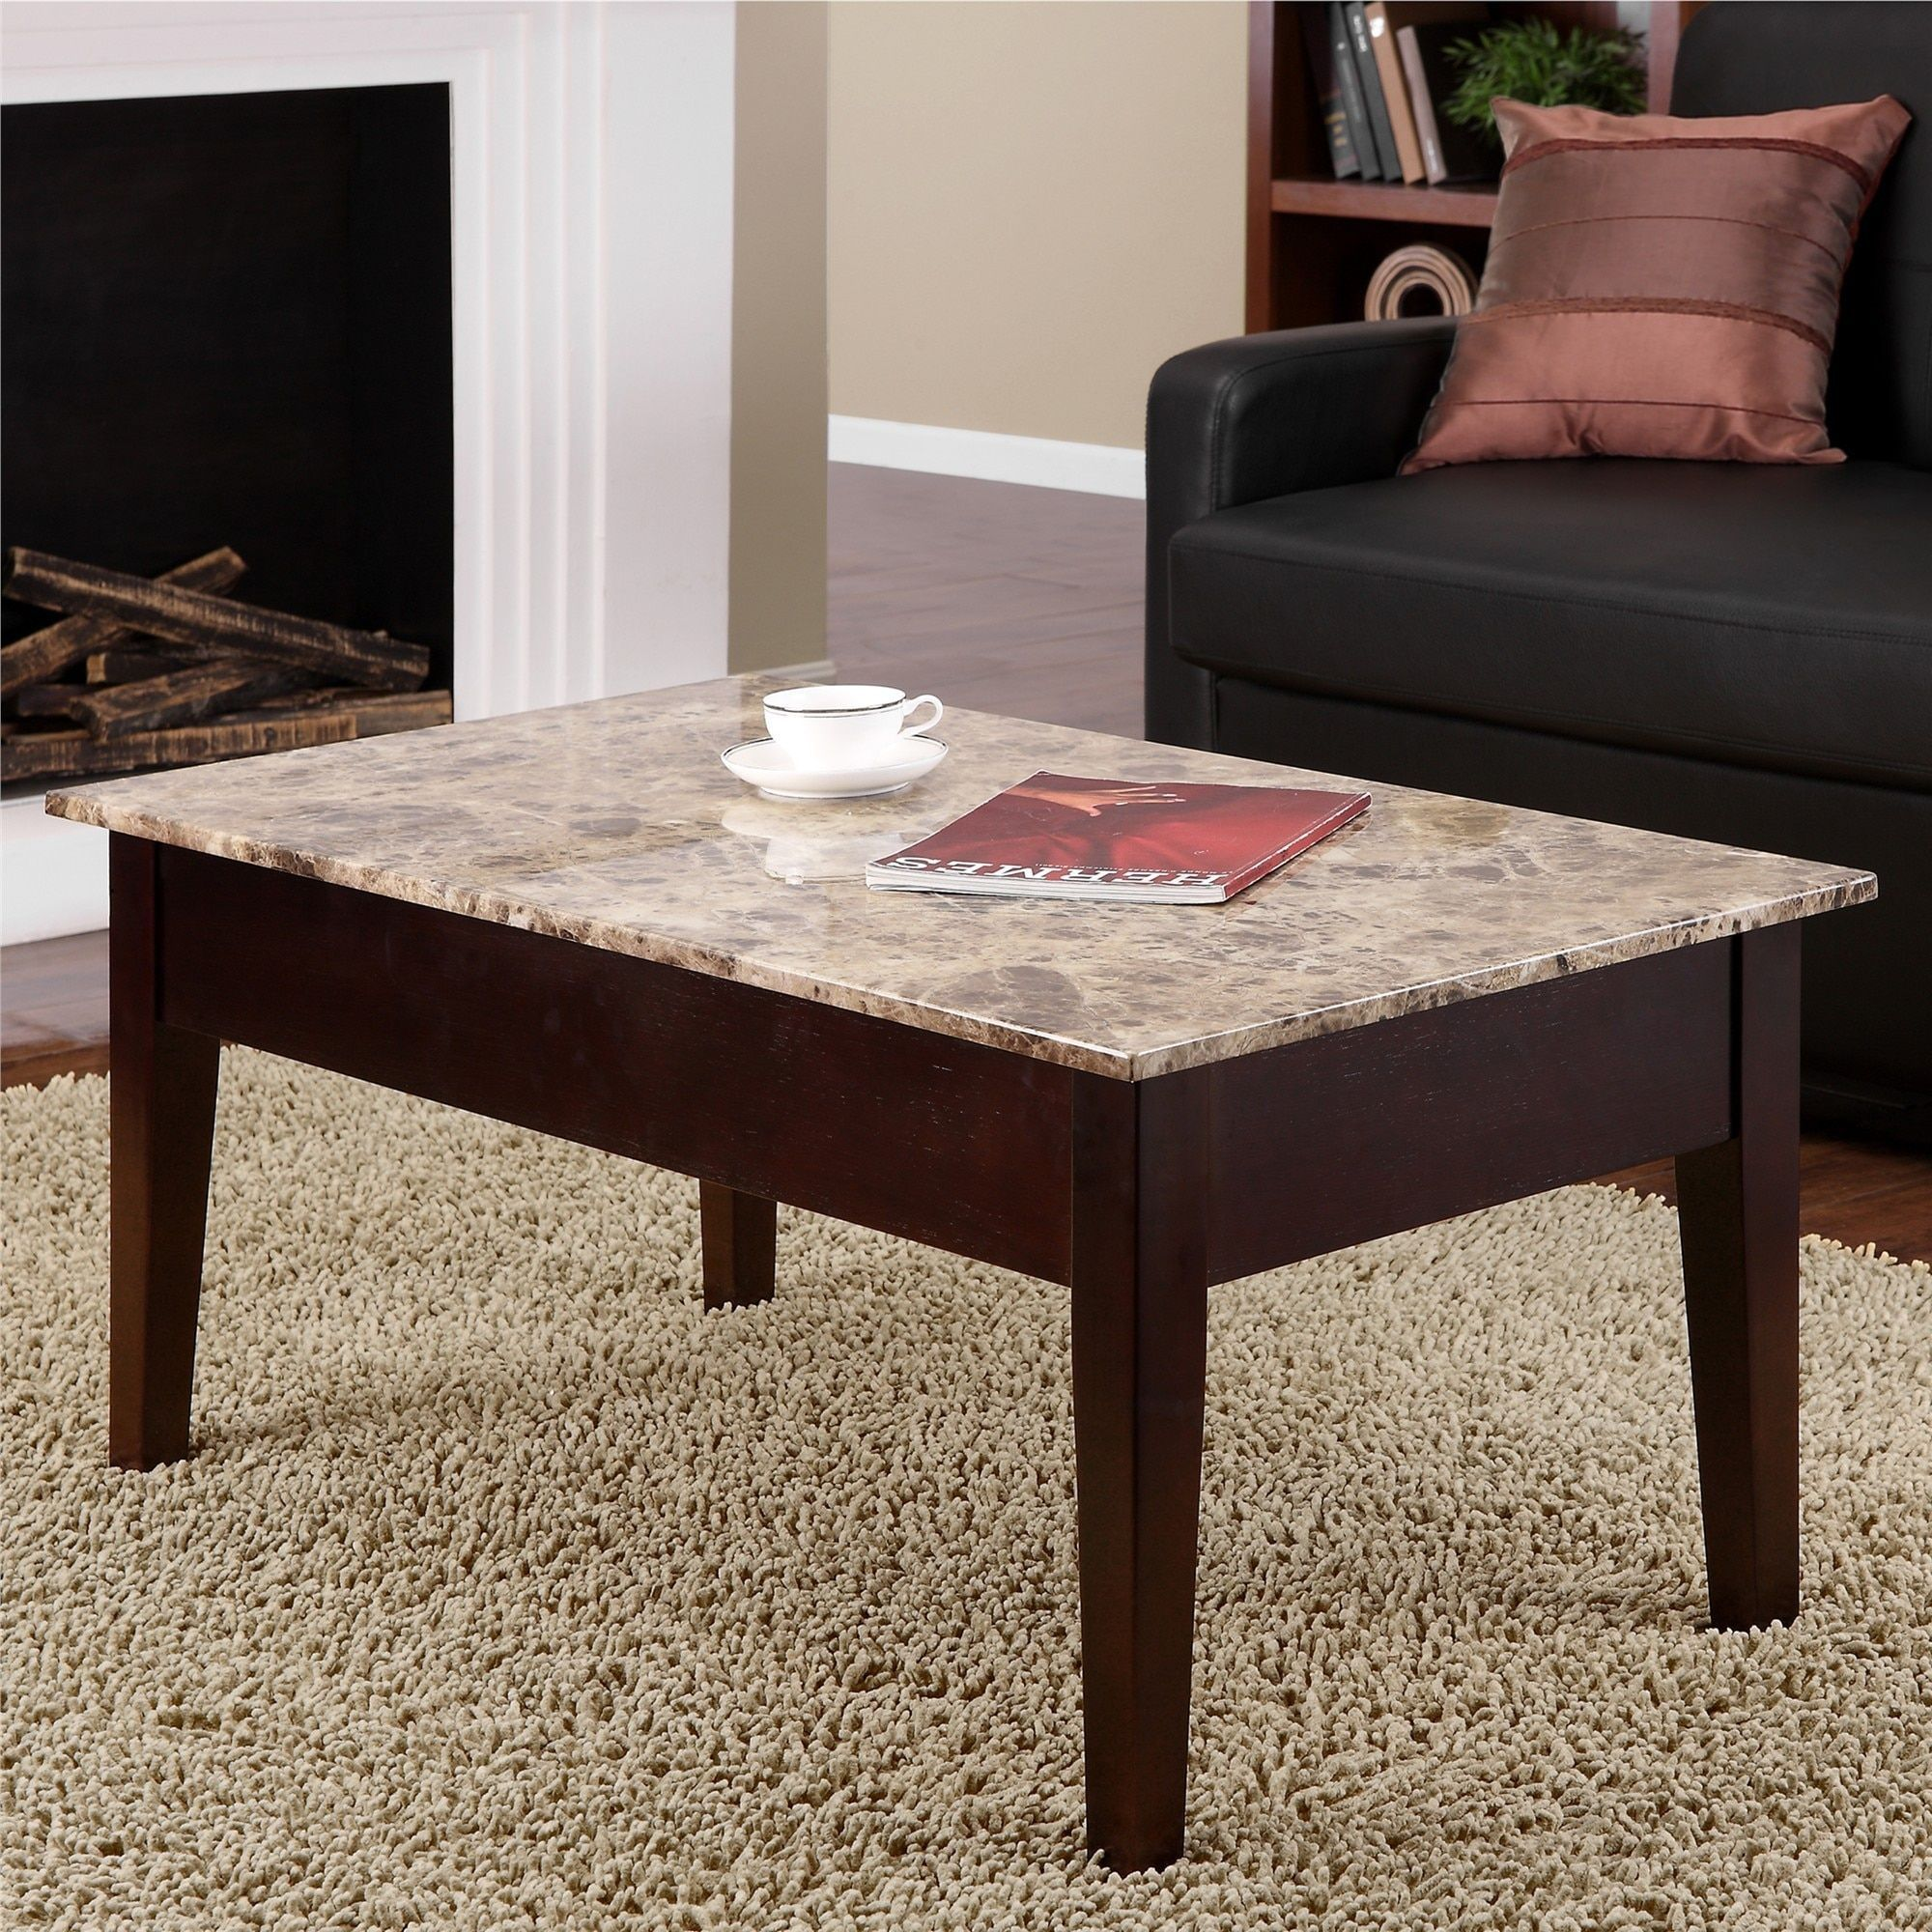 Overstock Com Online Shopping Bedding Furniture Electronics Jewelry Clothing More Coffee Table Coffee Table Wood Marble Coffee Table [ 2000 x 2000 Pixel ]